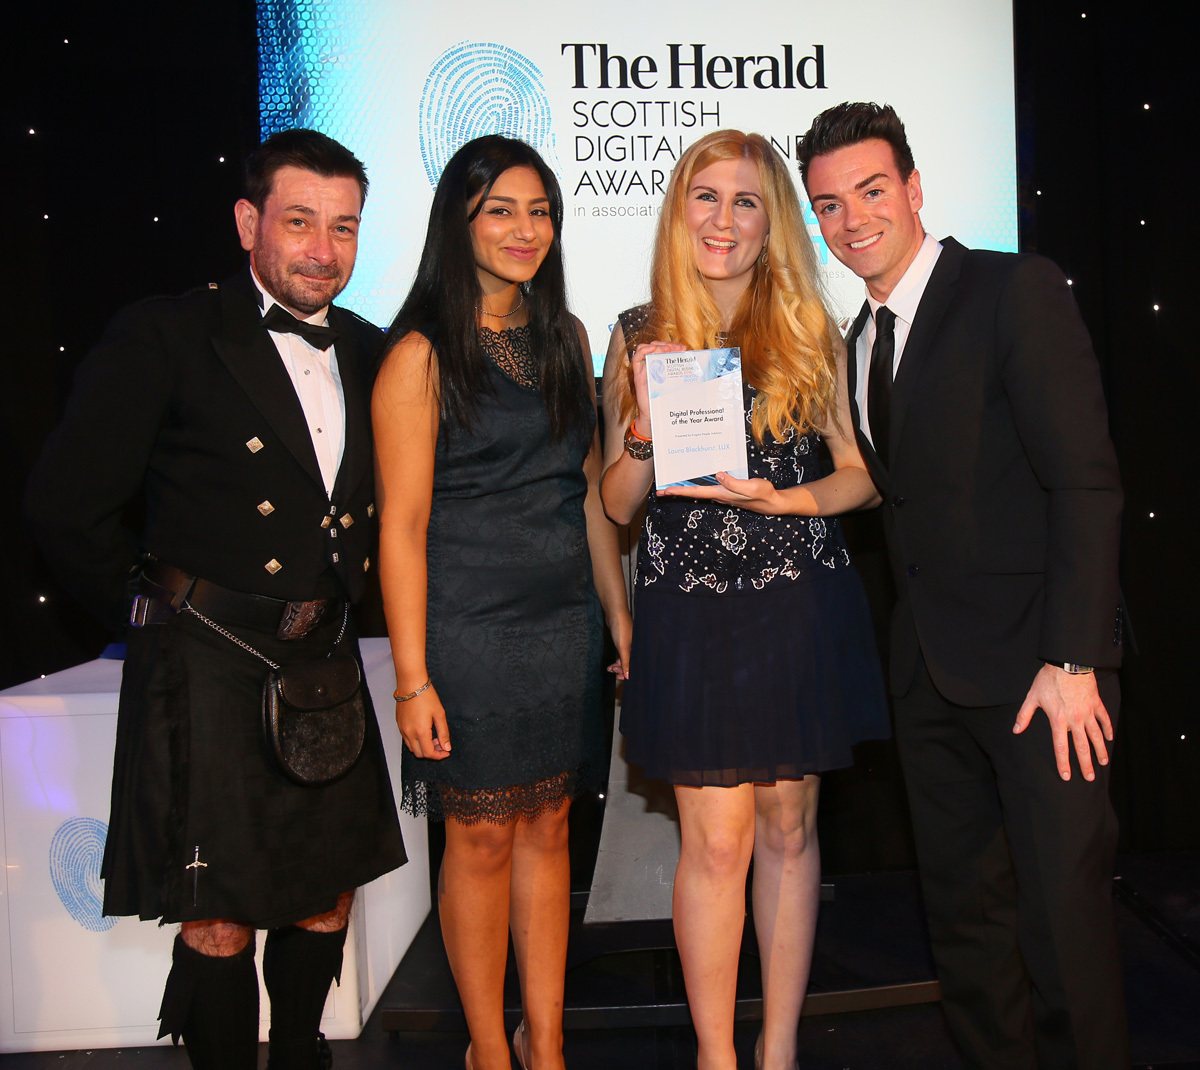 The Herald Scottish Digital Business awards 2016, Radisson Blu Hotel, Glasgow. Winner of the Digital Professional of the Year Award is  Laura Blackhurst of LUX. Presenting the award are David Mains and Anndeep Sandhu, both of Enigma People Solutions and h